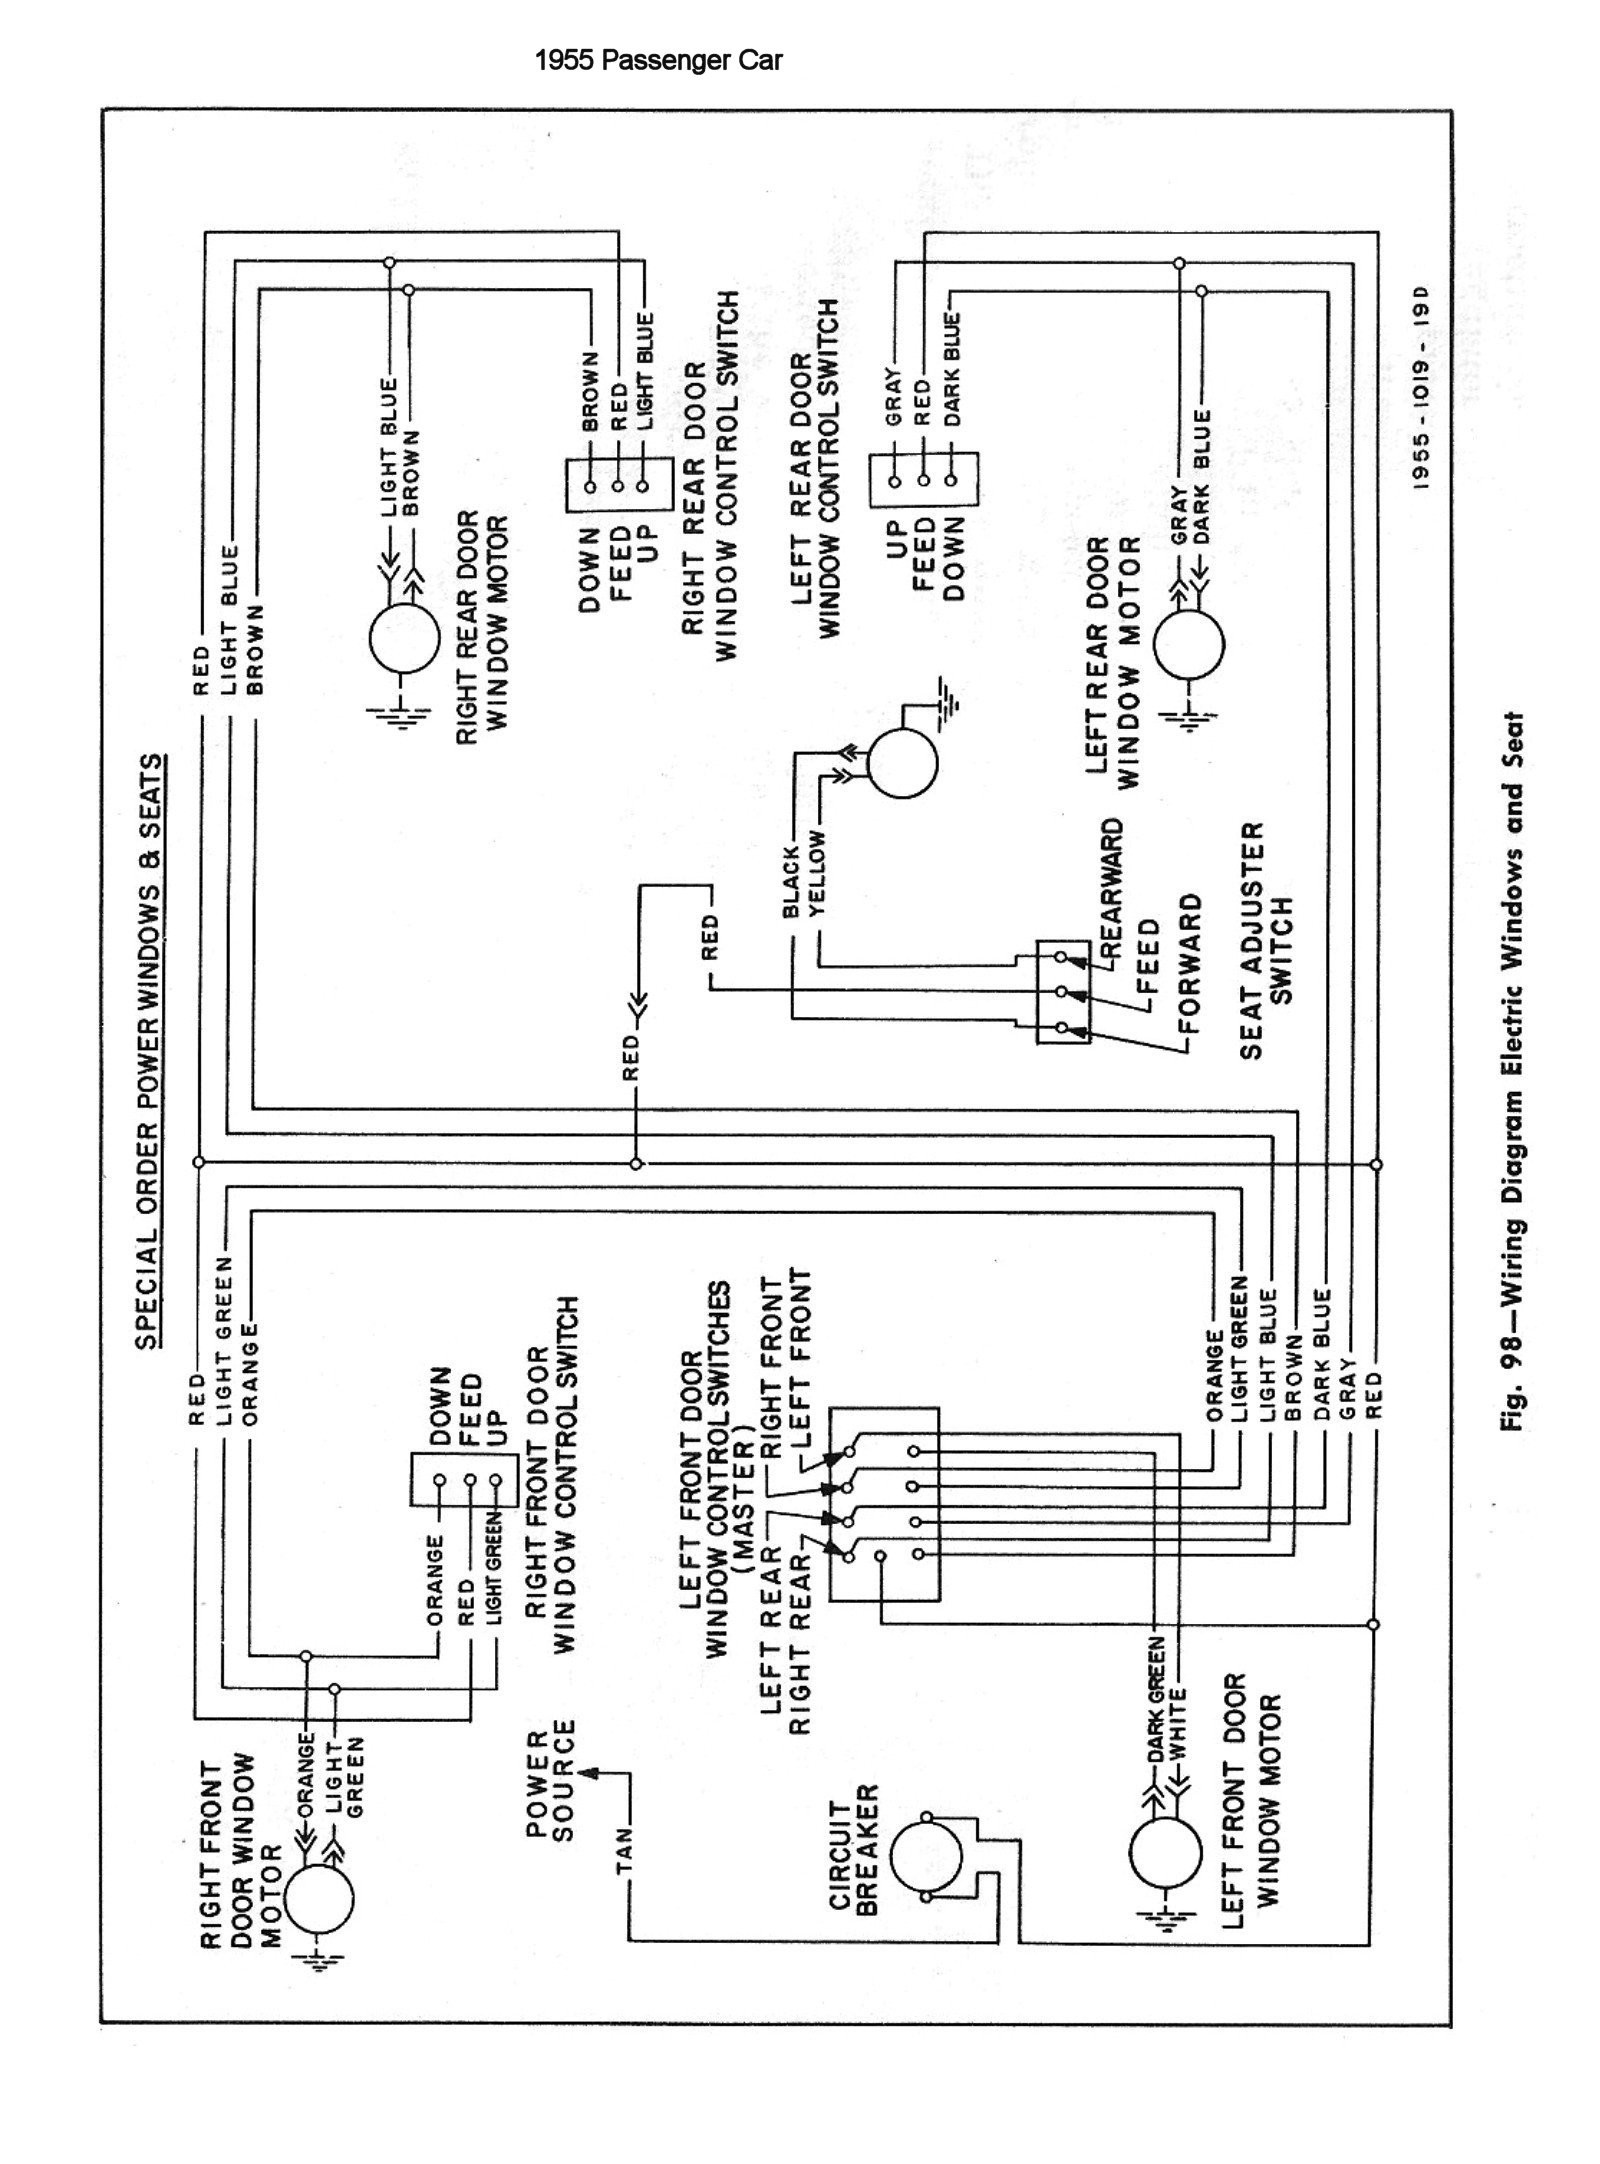 Wiring Diagram For Toyota Corolla Toyota Wiring